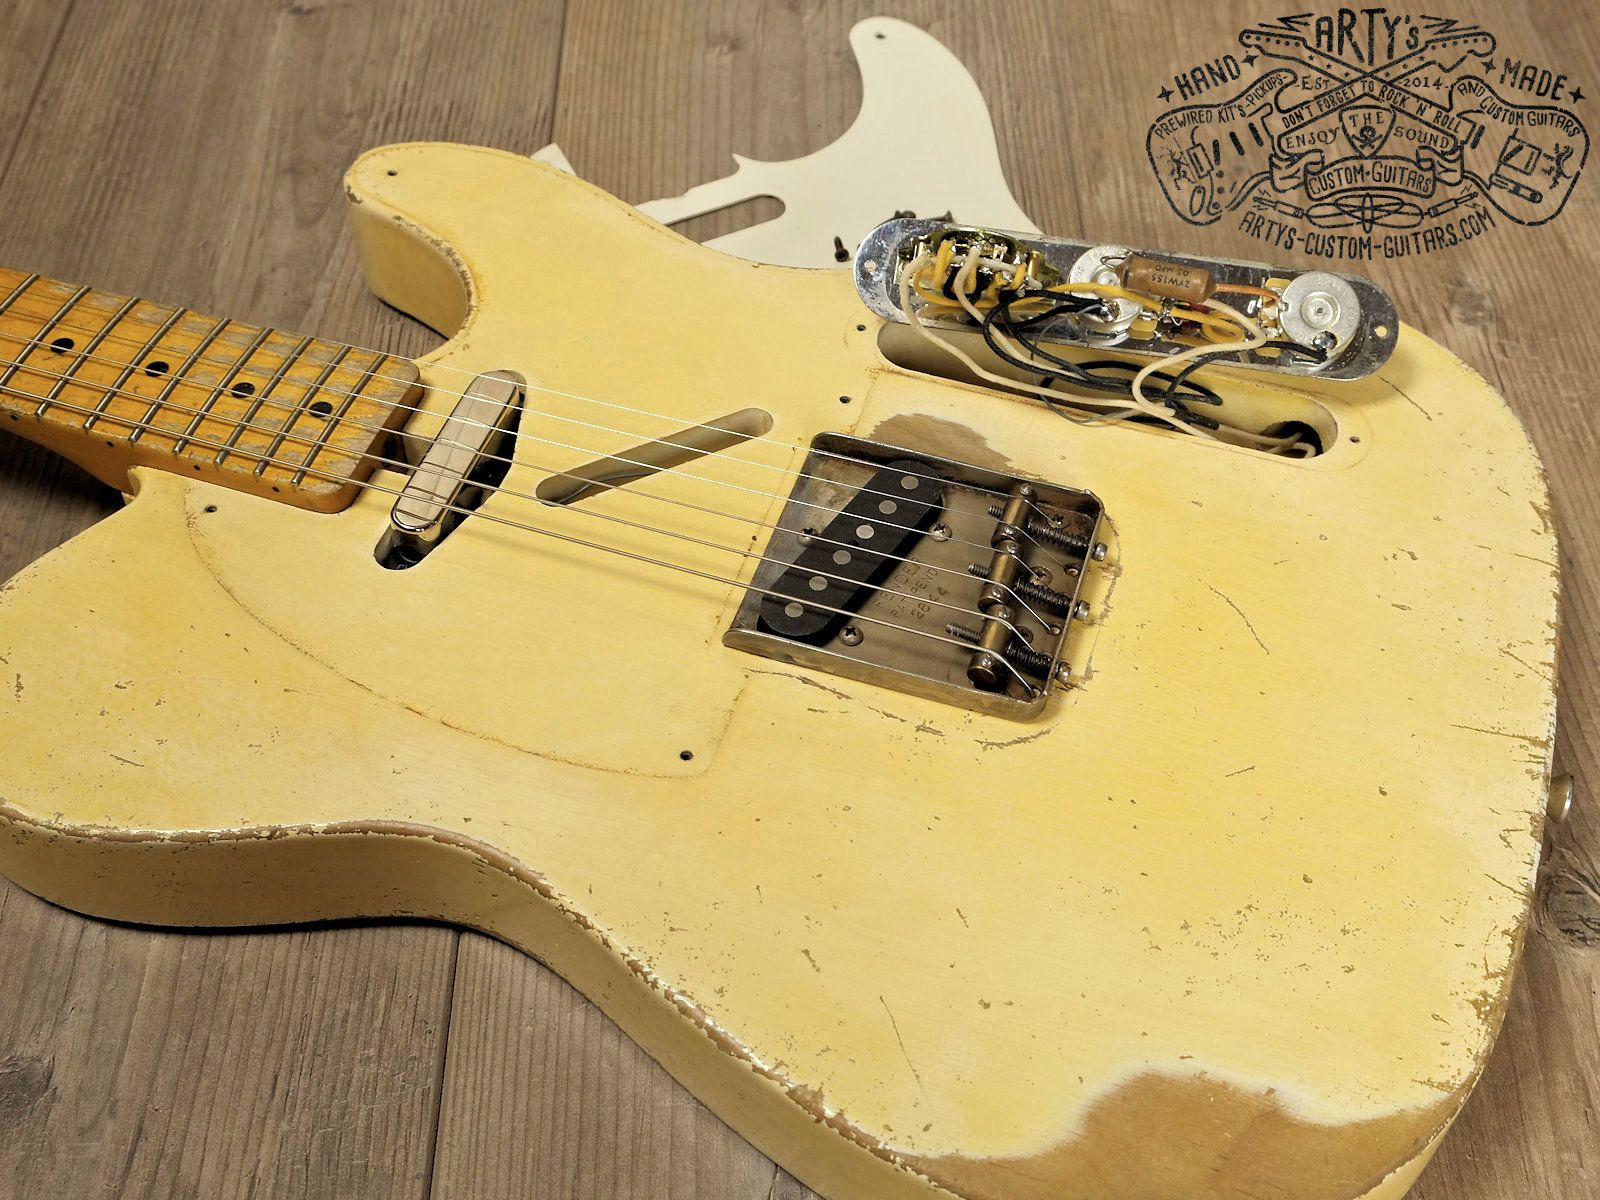 vintage blonde 1958 telecaster maple neck alder body nitro finish relic aged arty s custom guitars blond [ 1600 x 1200 Pixel ]